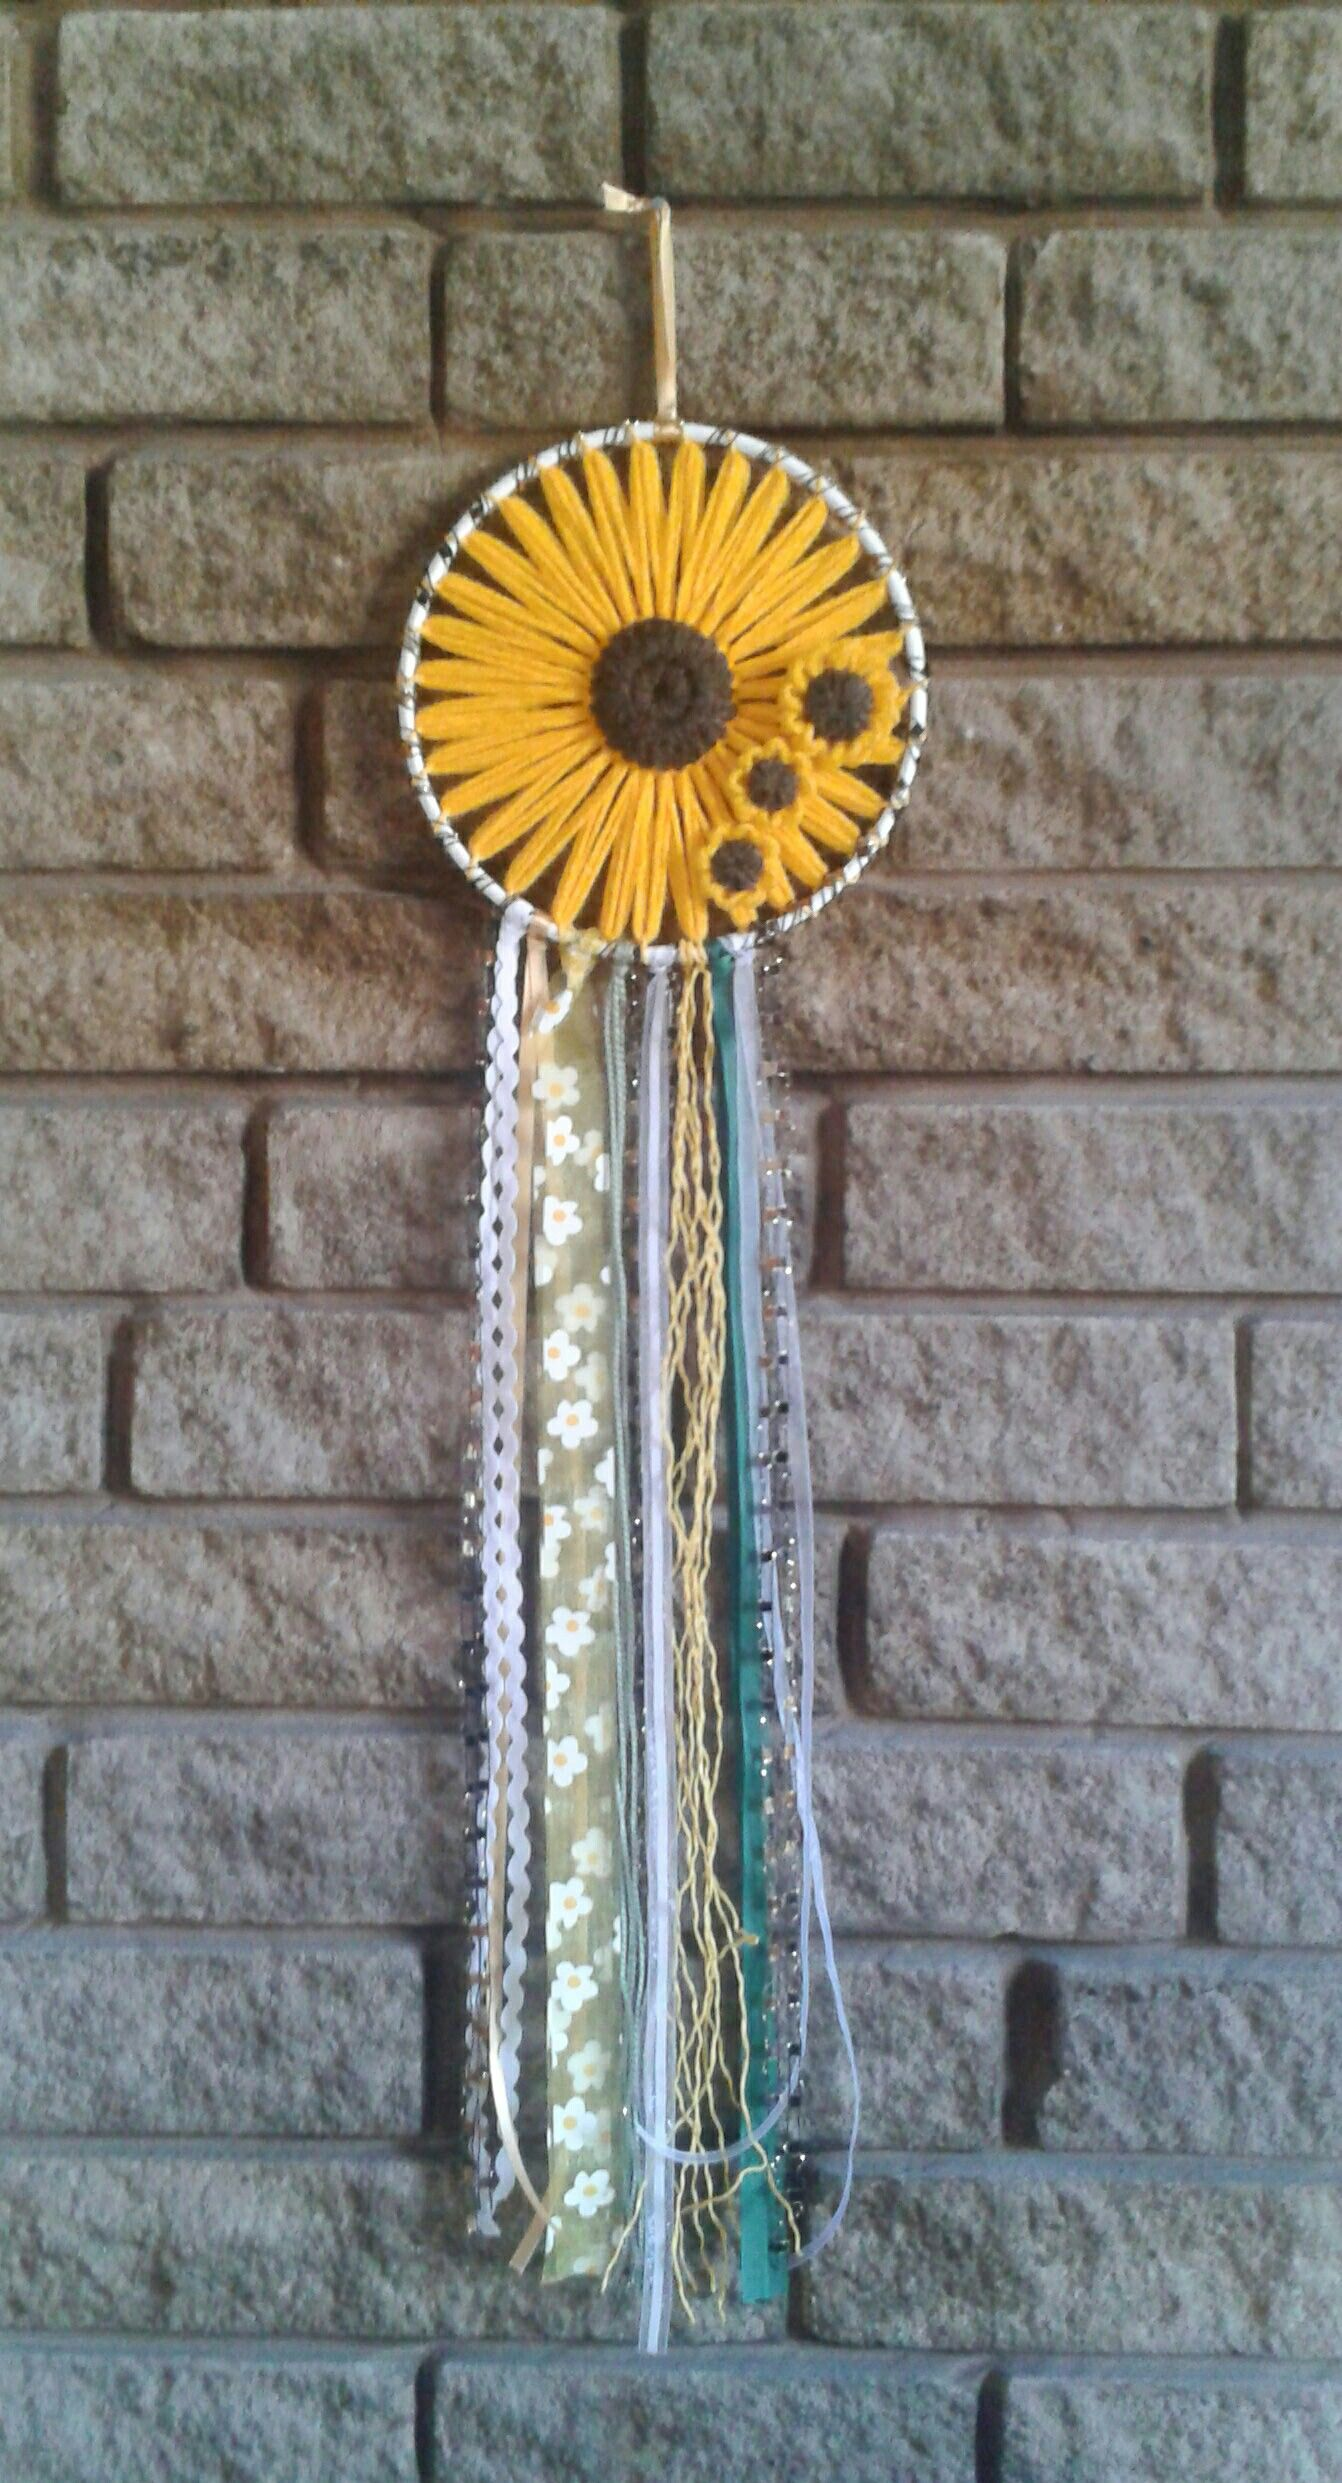 Gorgeous summer sunflower dreamcatcher. The centre of this 7 hoop is filled with a large loom knit sunflower & 3 smaller flowers  & finished with a variety of wool, raffia & ribbon streamers. Can be made to order in colours/size of your choice by contacting me via www.facebook.com/annepearsondesigns or www.instagram.com/annennepearsondesigns. This piece is available to buy at annepearsondesigns.tictail.com #sunflowerbedroomideas